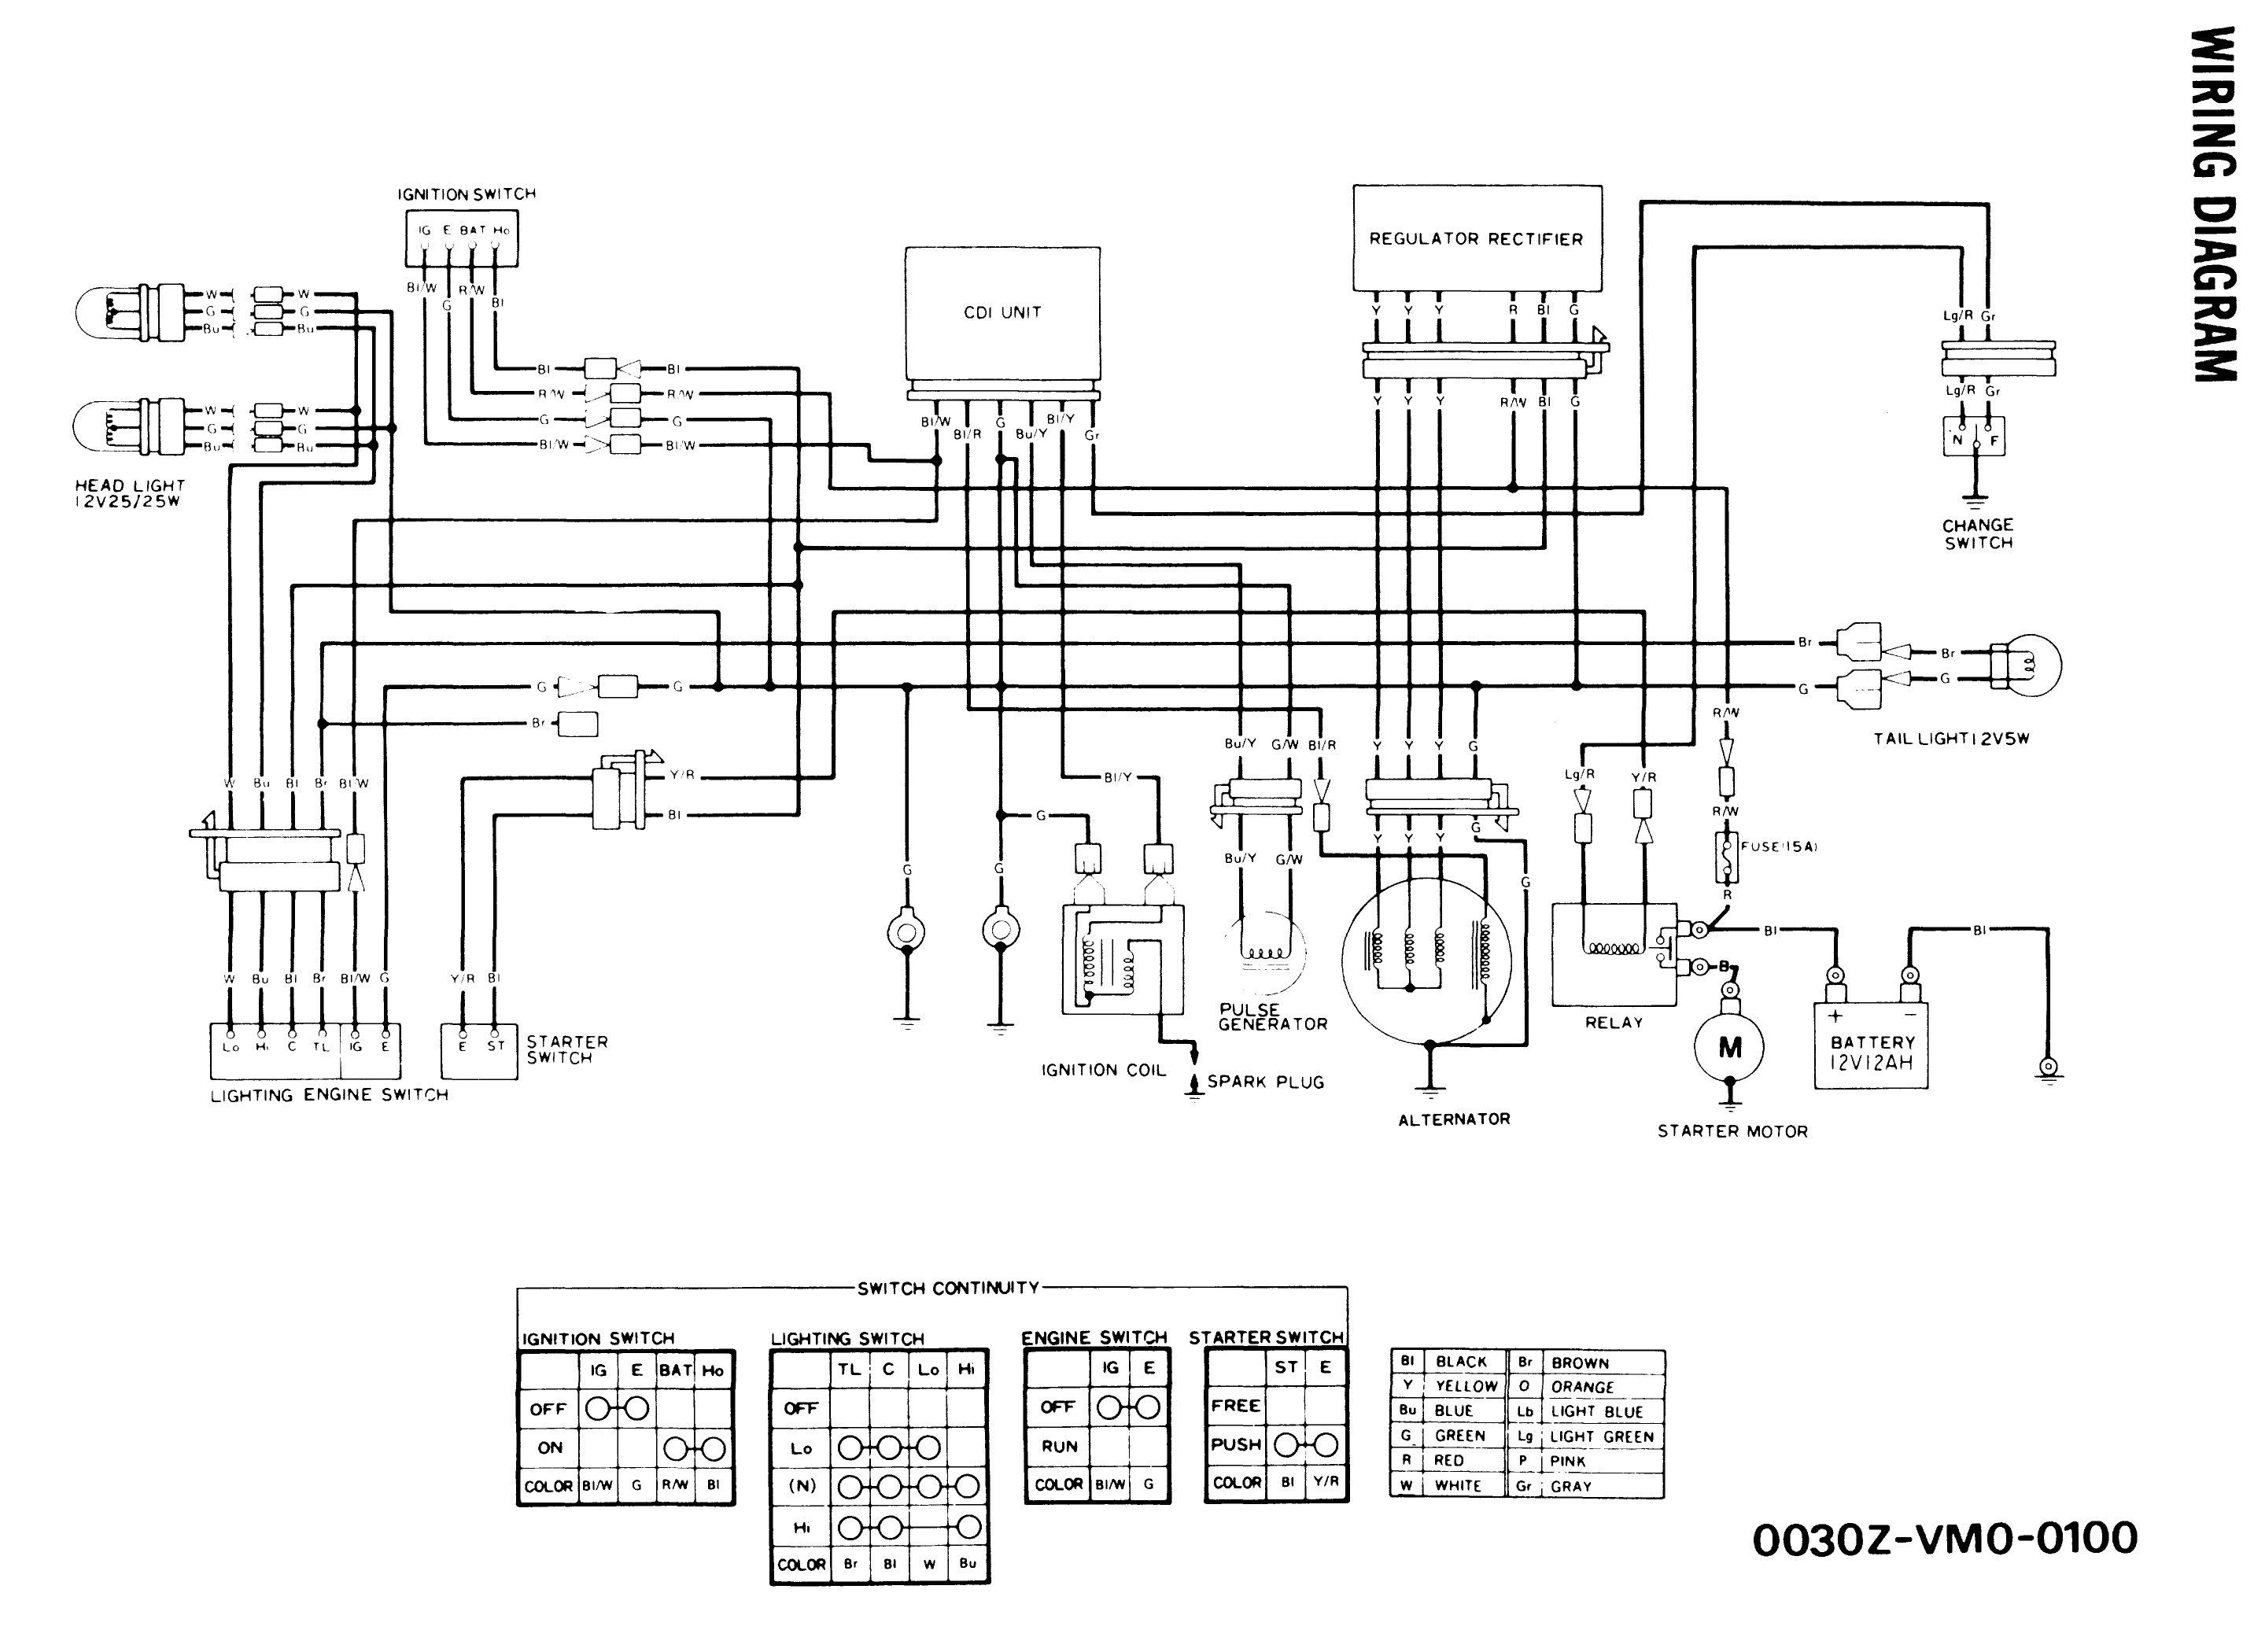 [DIAGRAM] 2002 Honda Odyssey Diagram FULL Version HD